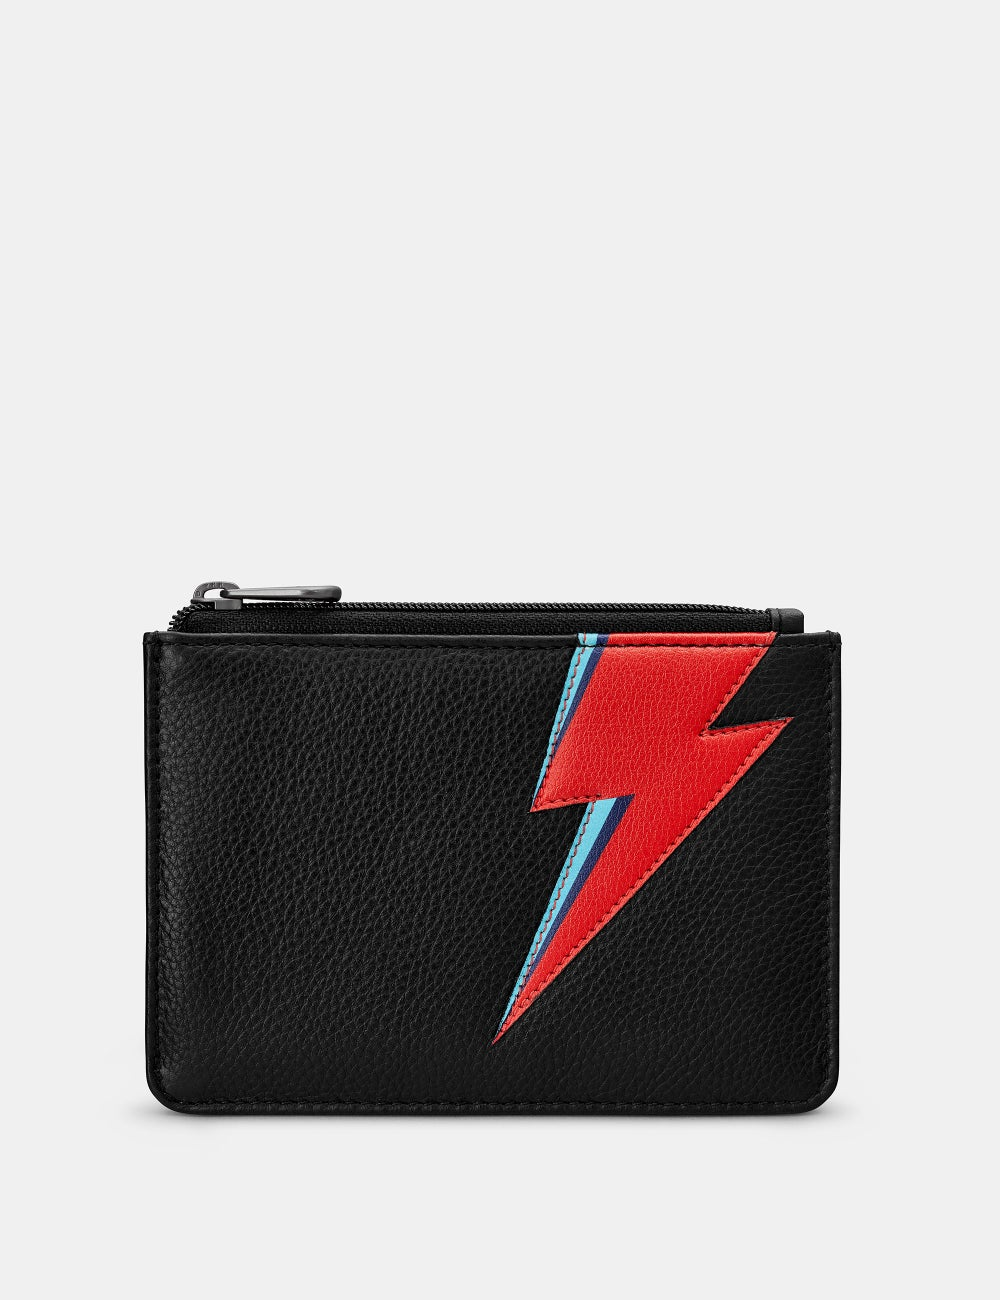 Lightning Bolt Black Leather Zip Top Franklin Purse